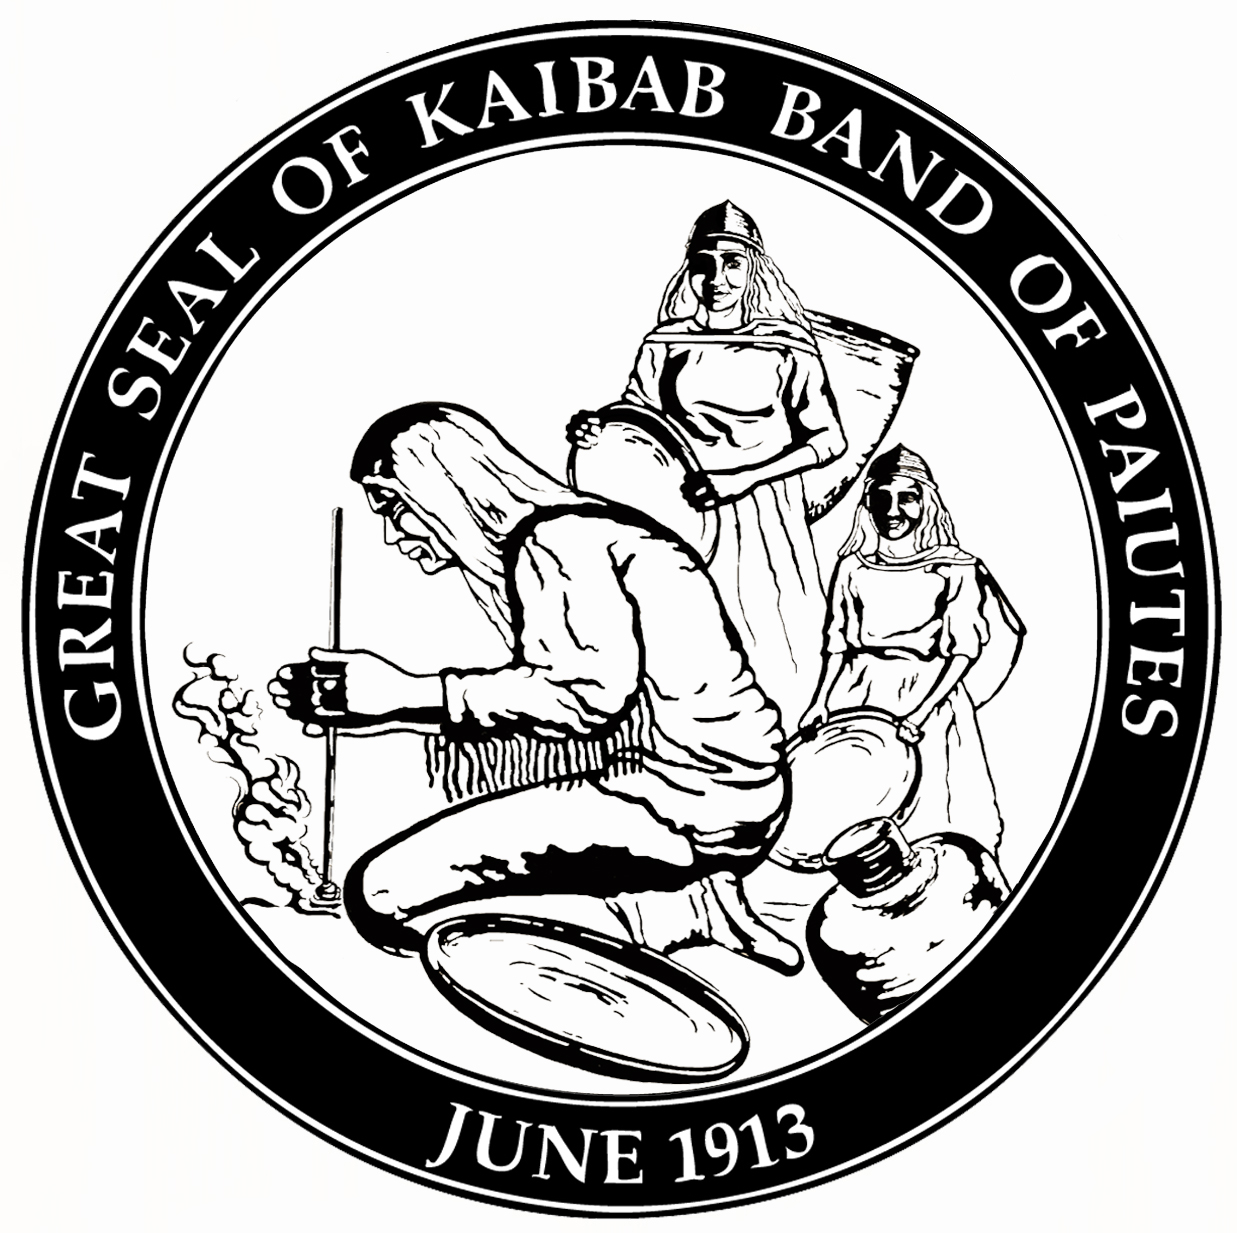 Kaibab Band of Paiute Indians